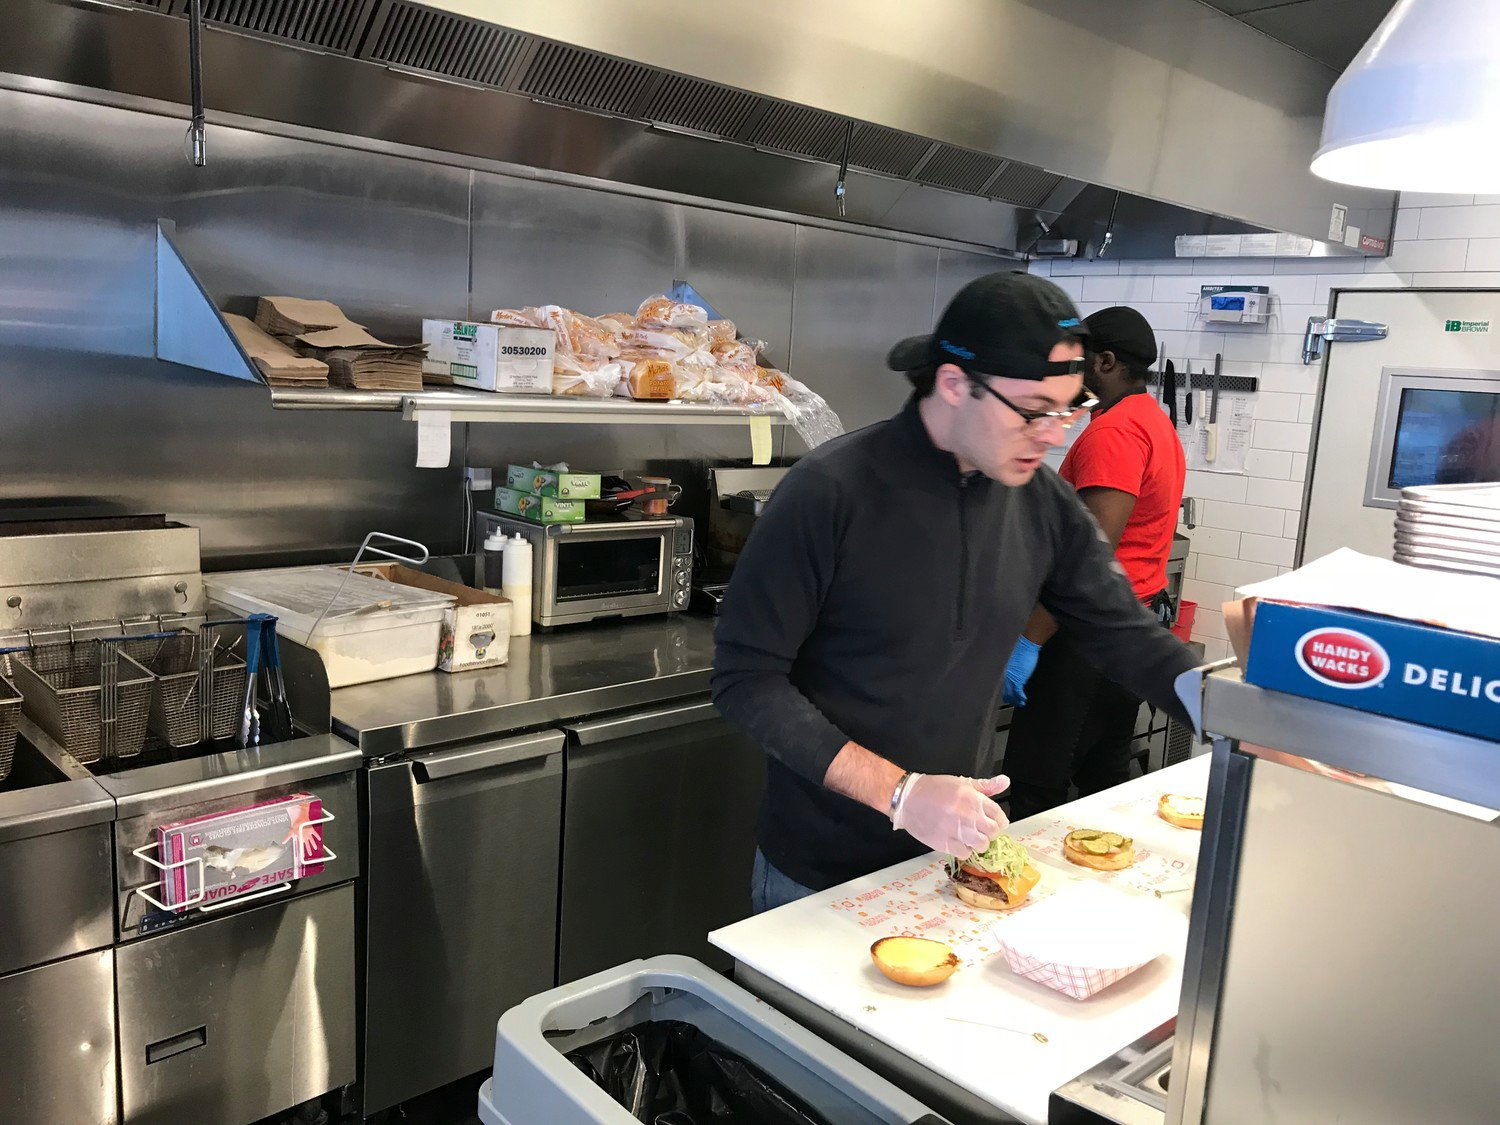 Burger Bandit owner Ryan Straschnow and several volunteers will prepare meals to deliver to homeless shelters on Thanksgiving Day.